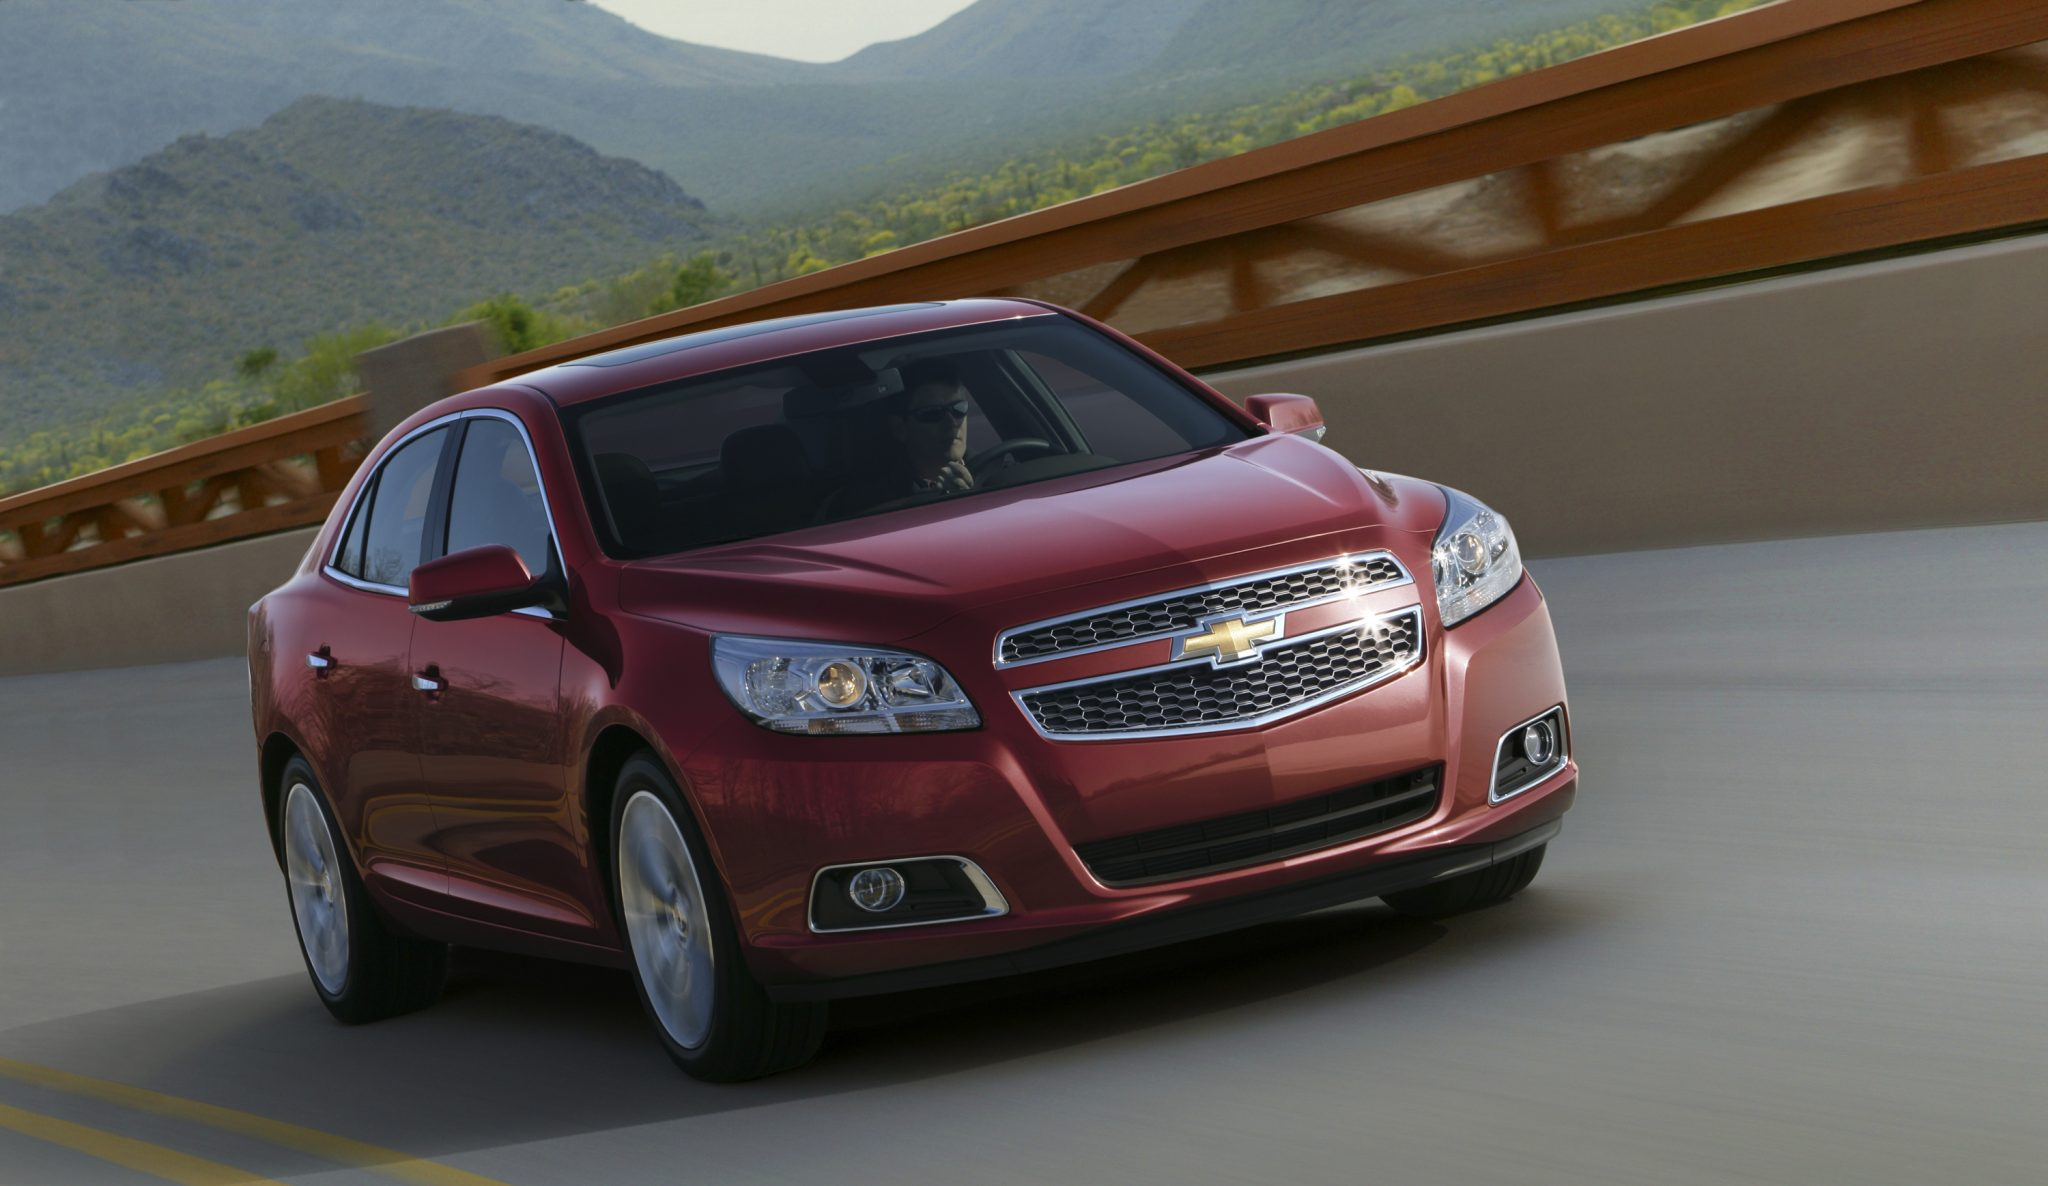 2013 Chevy Malibu & Chevy Equinox Reviews